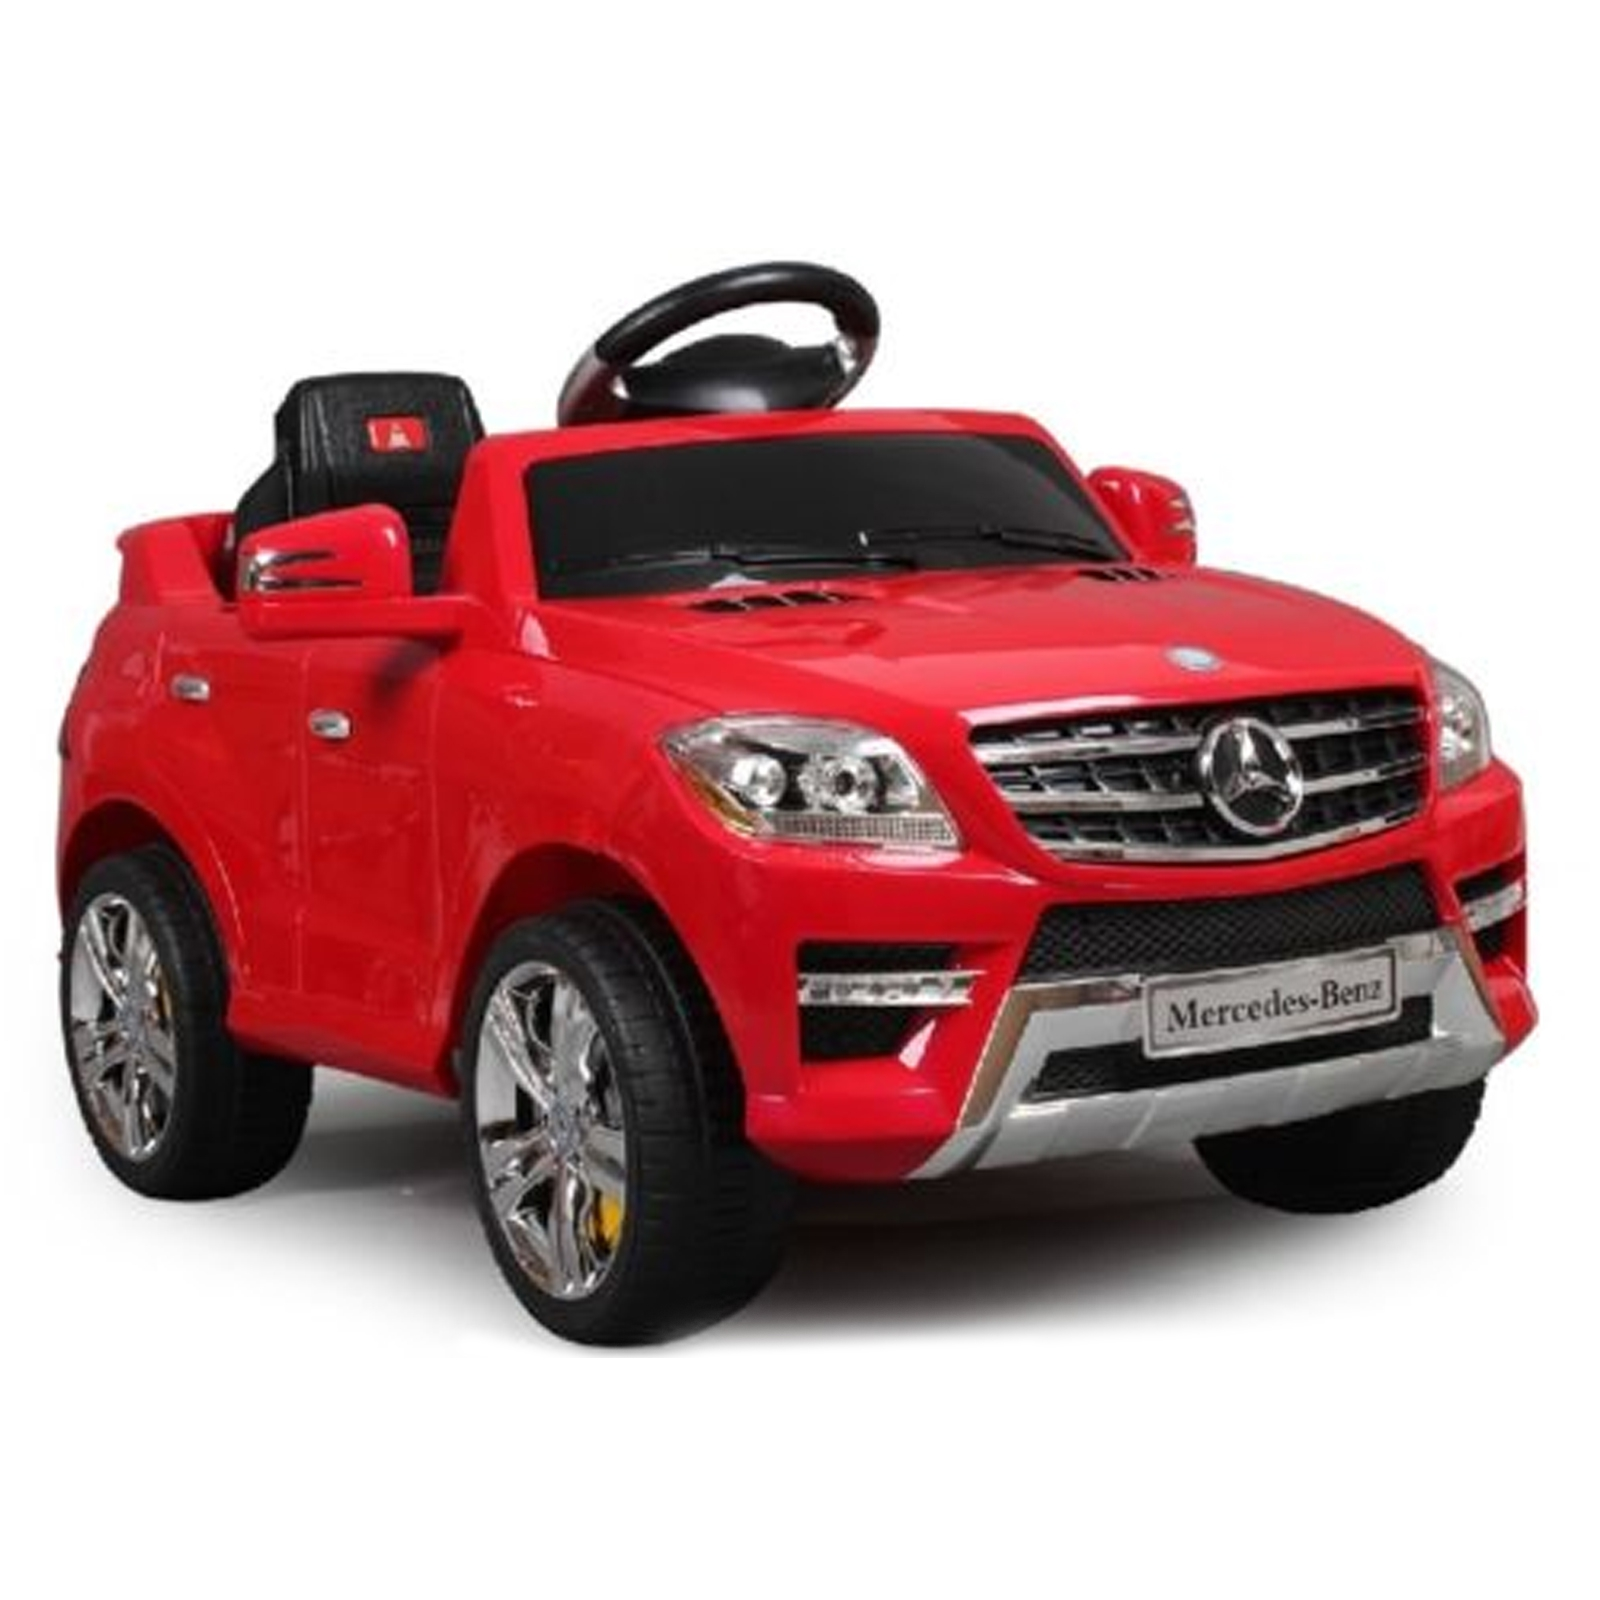 Licensed mercedes benz ml 350 6v kids battery powered car for Mercedes benz truck toys